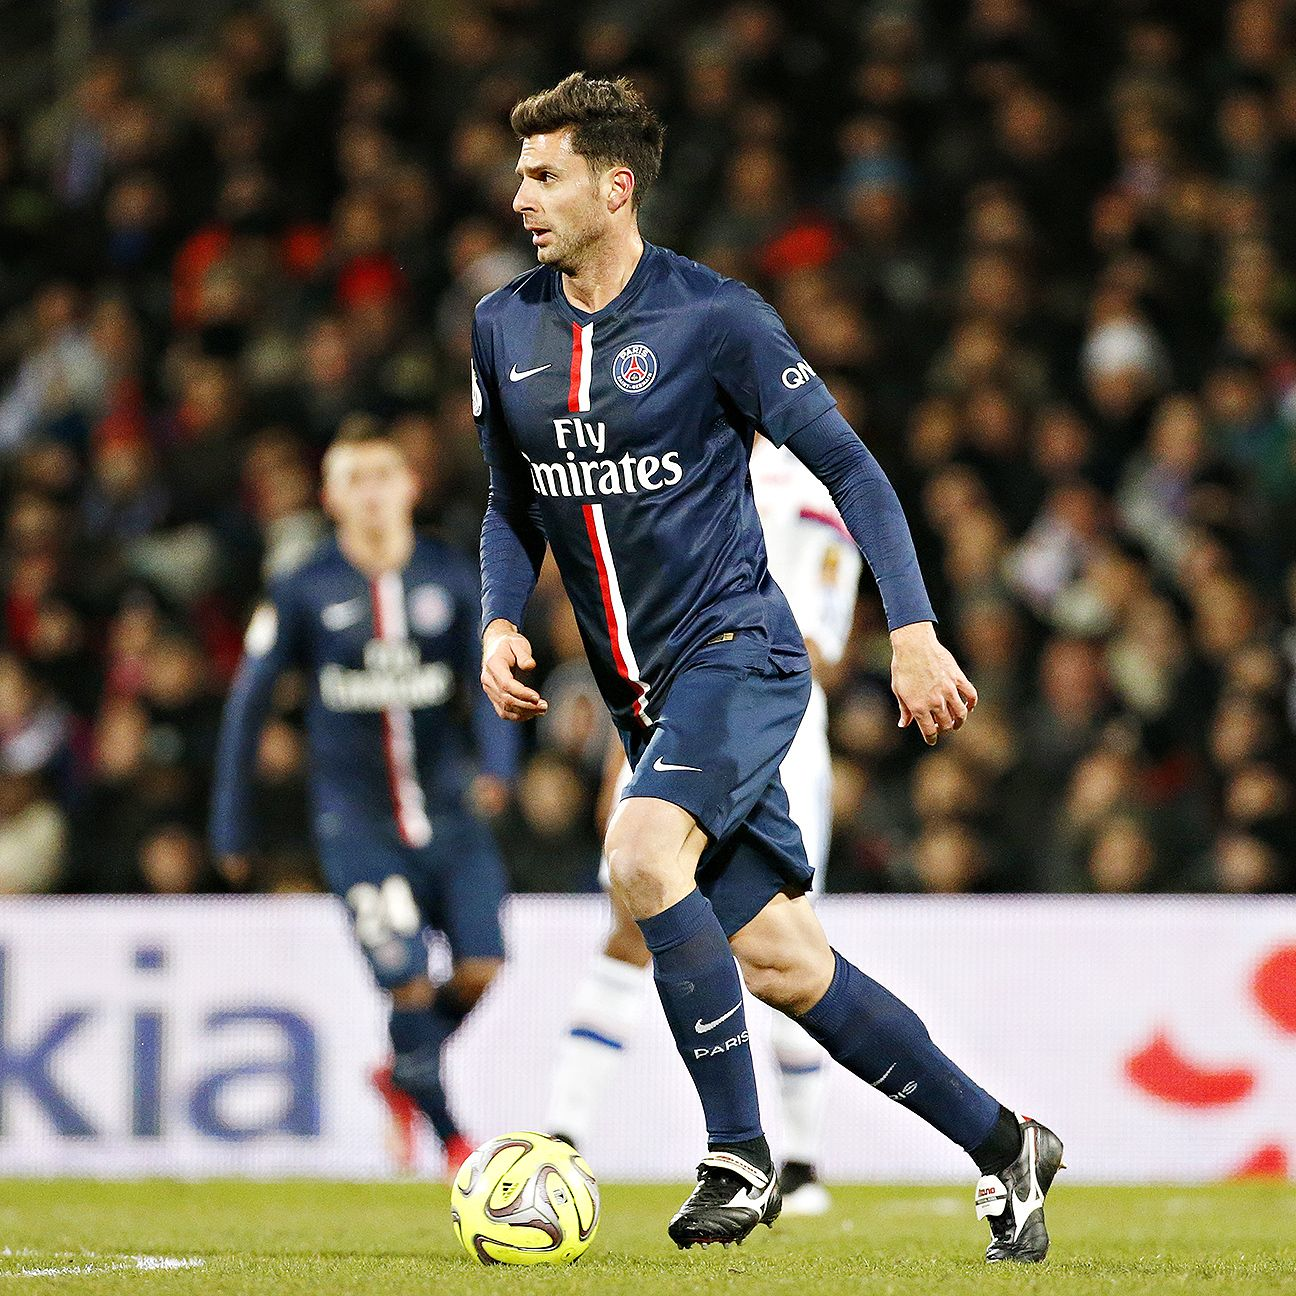 Thiago Motta appeared in 27 Ligue 1 matches for PSG in 2014-15.